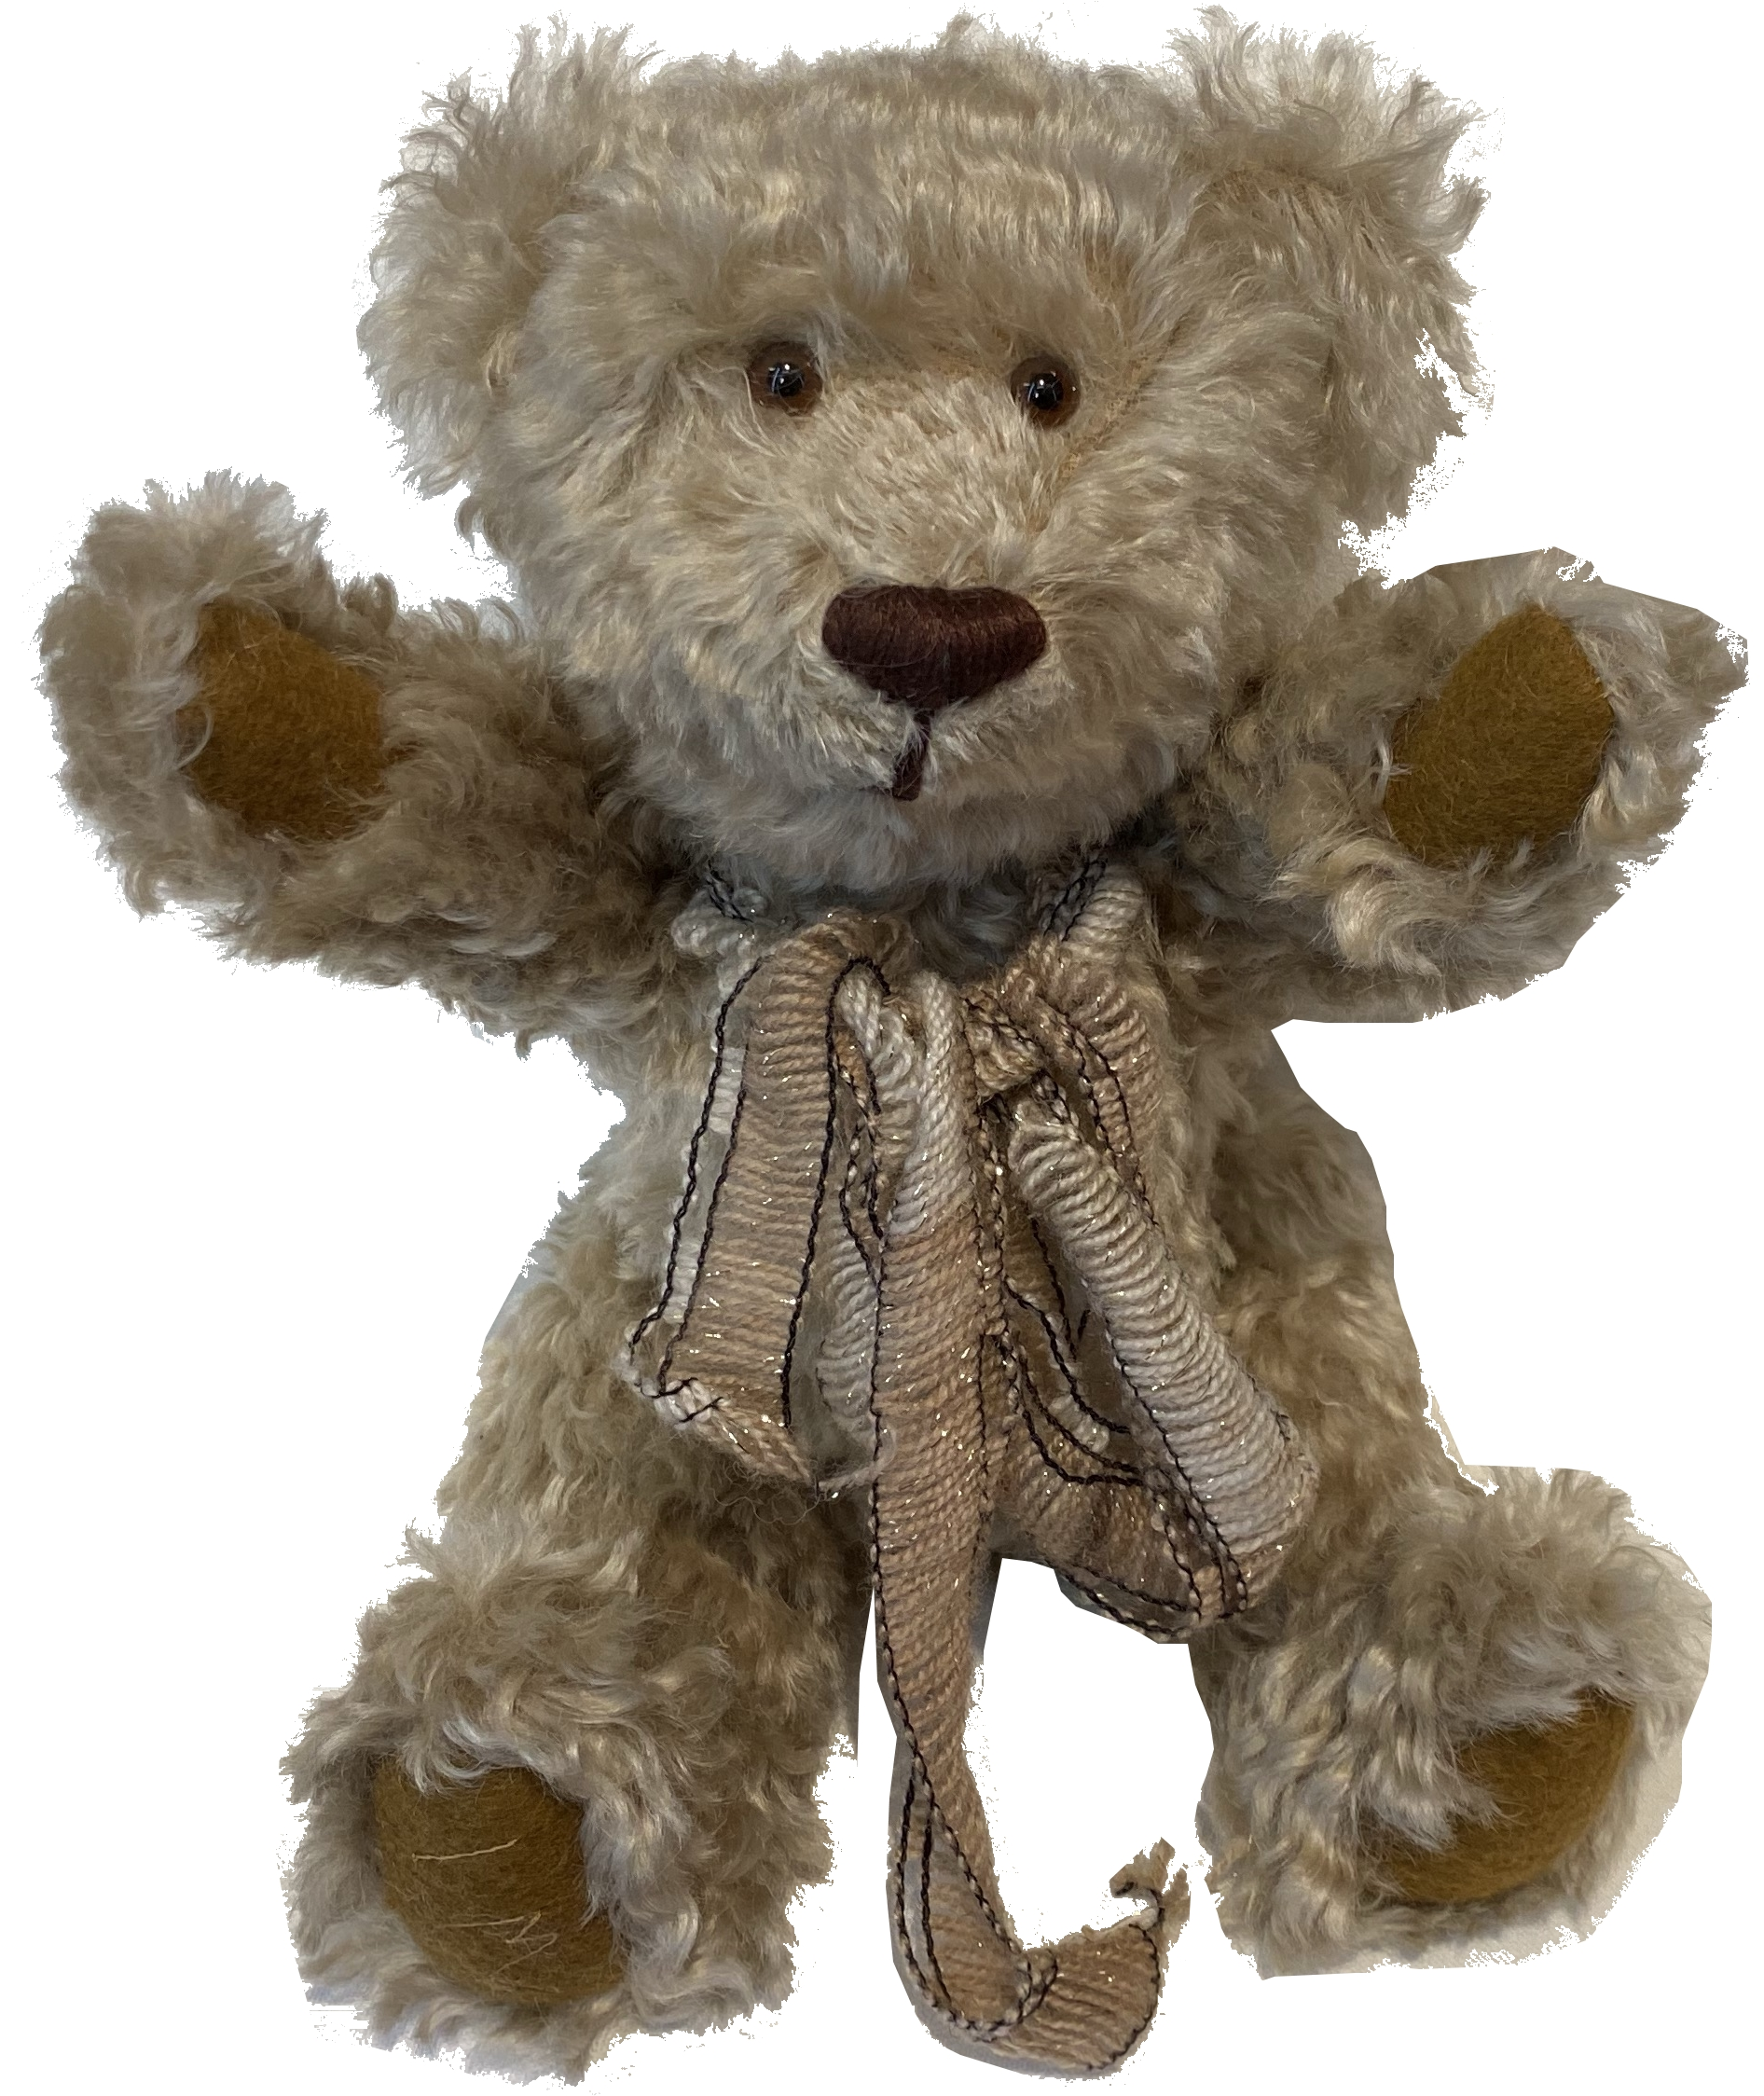 OURS ARTISANAL TEDDY